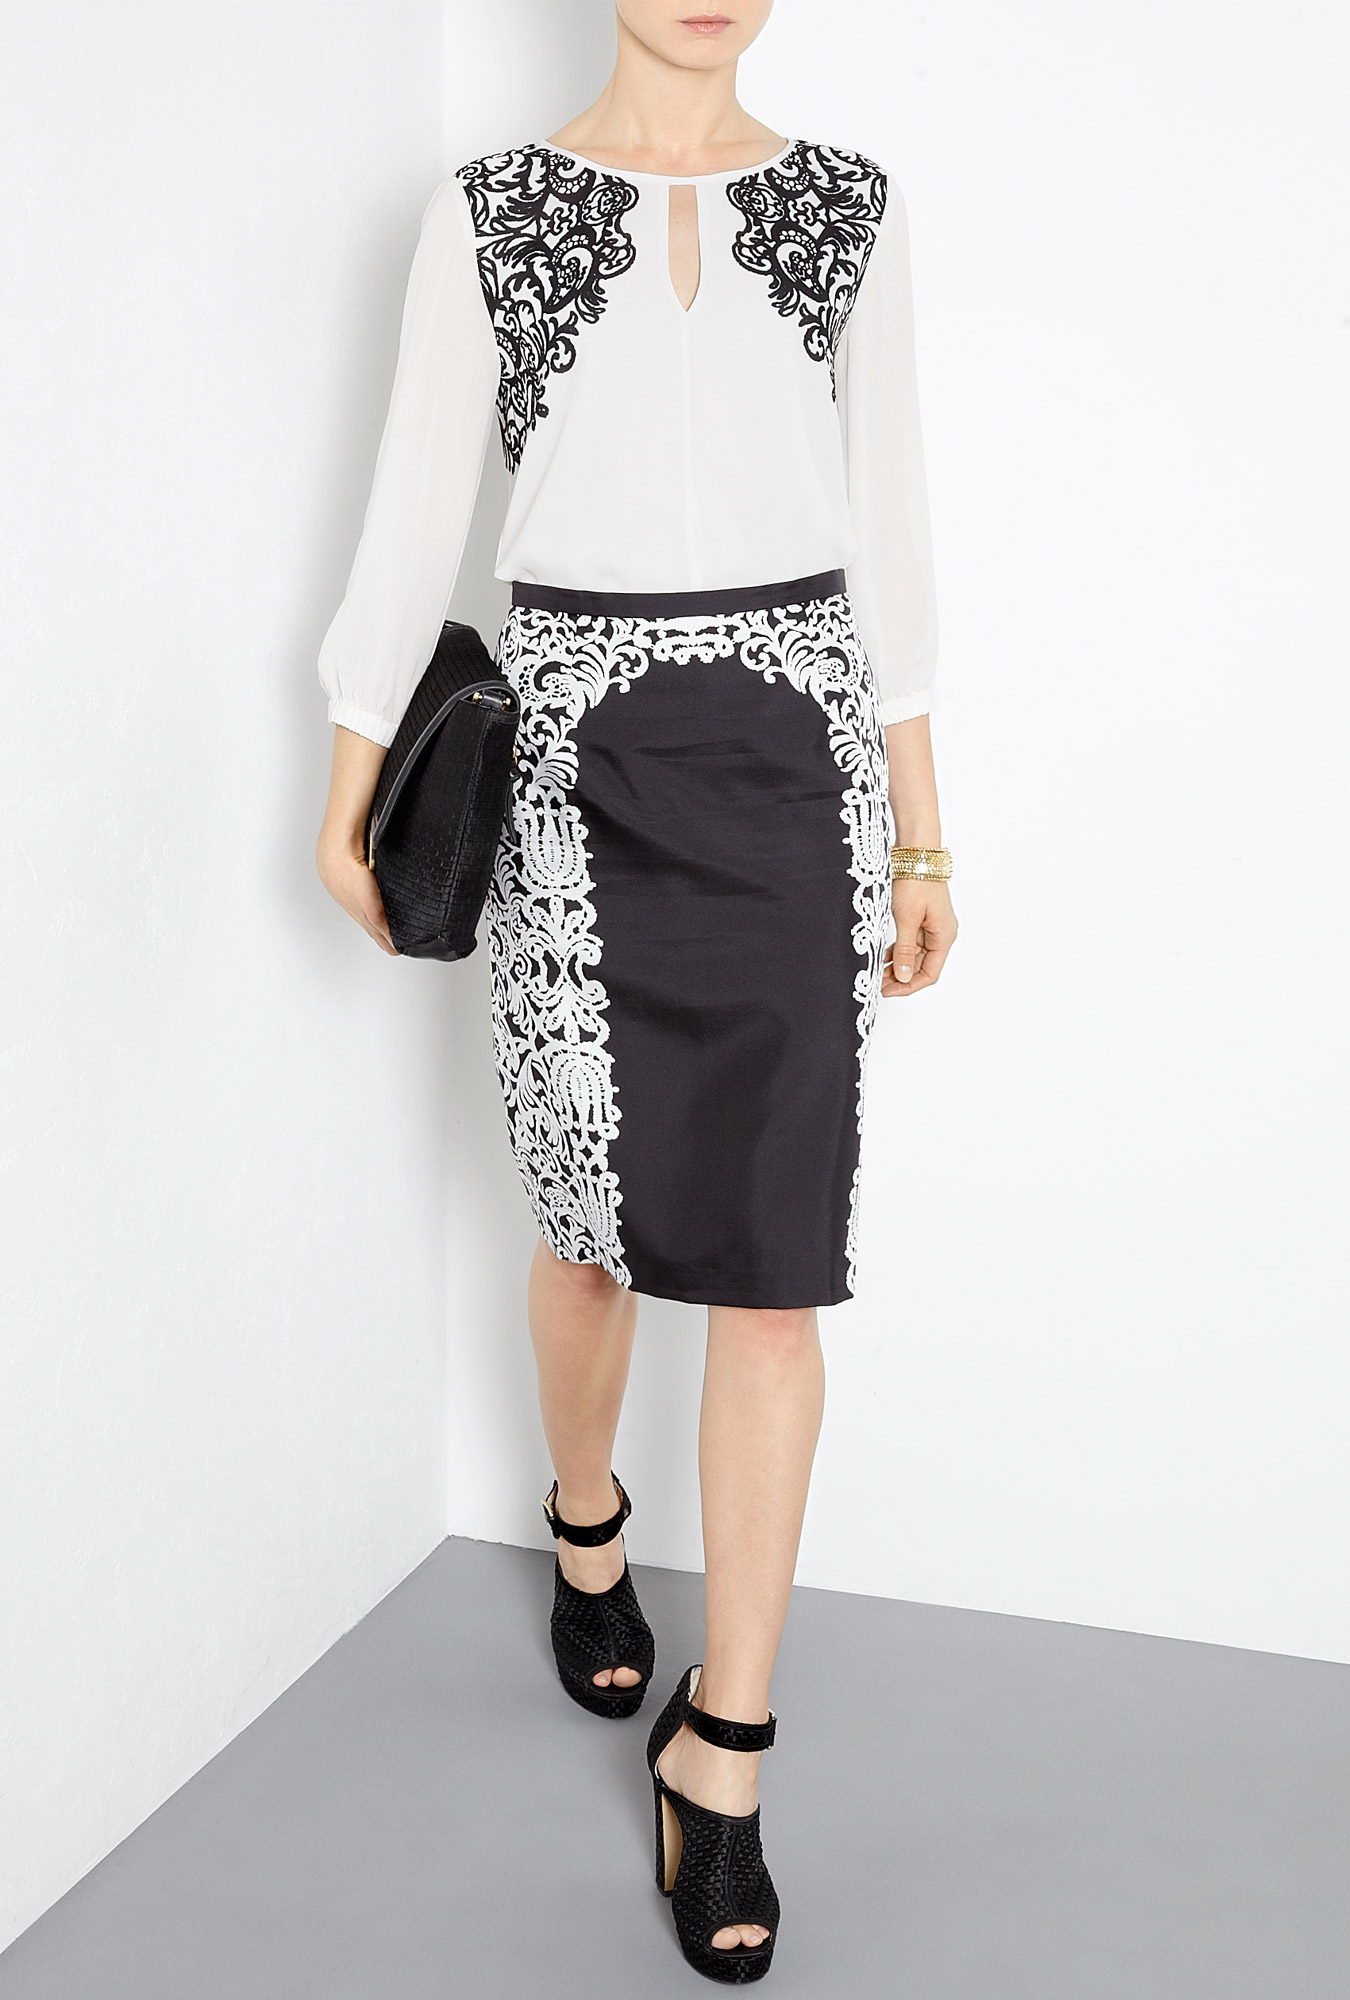 tibi-evelyn-baroque-lace-print-silk-blouse-product-3-5066301-319047587.